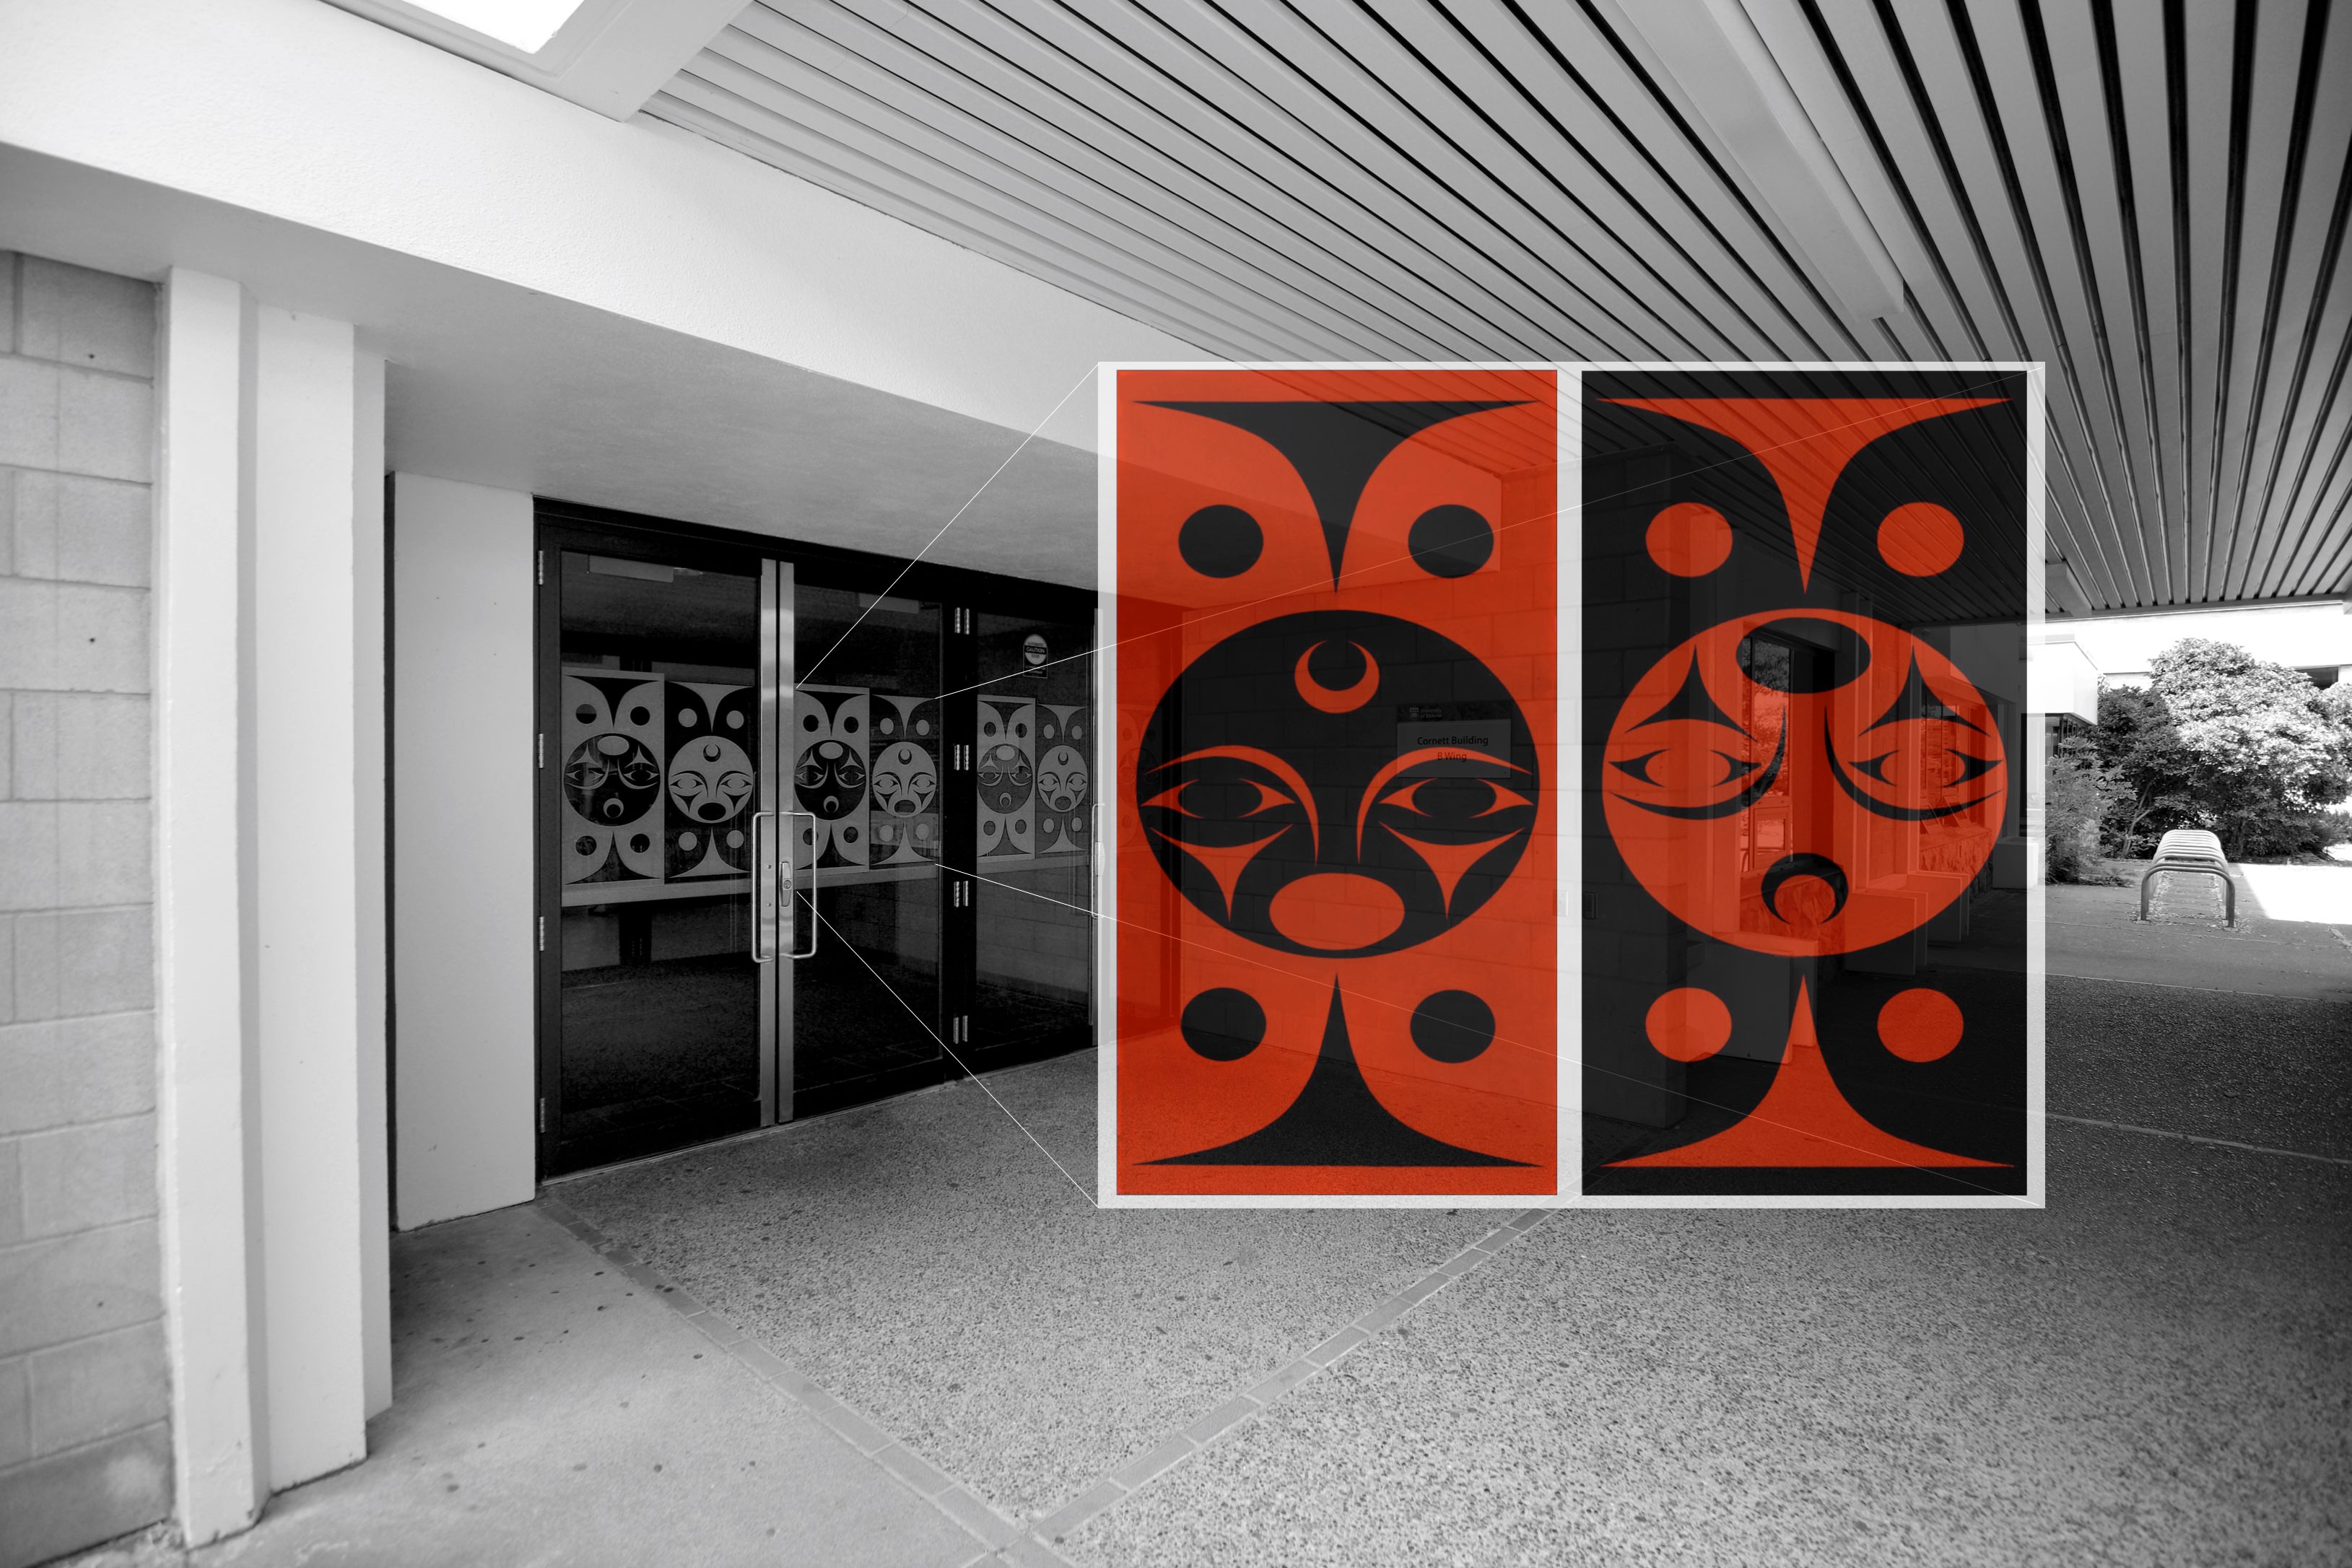 cornett-building-guided-tour-of-first-nations-artwork